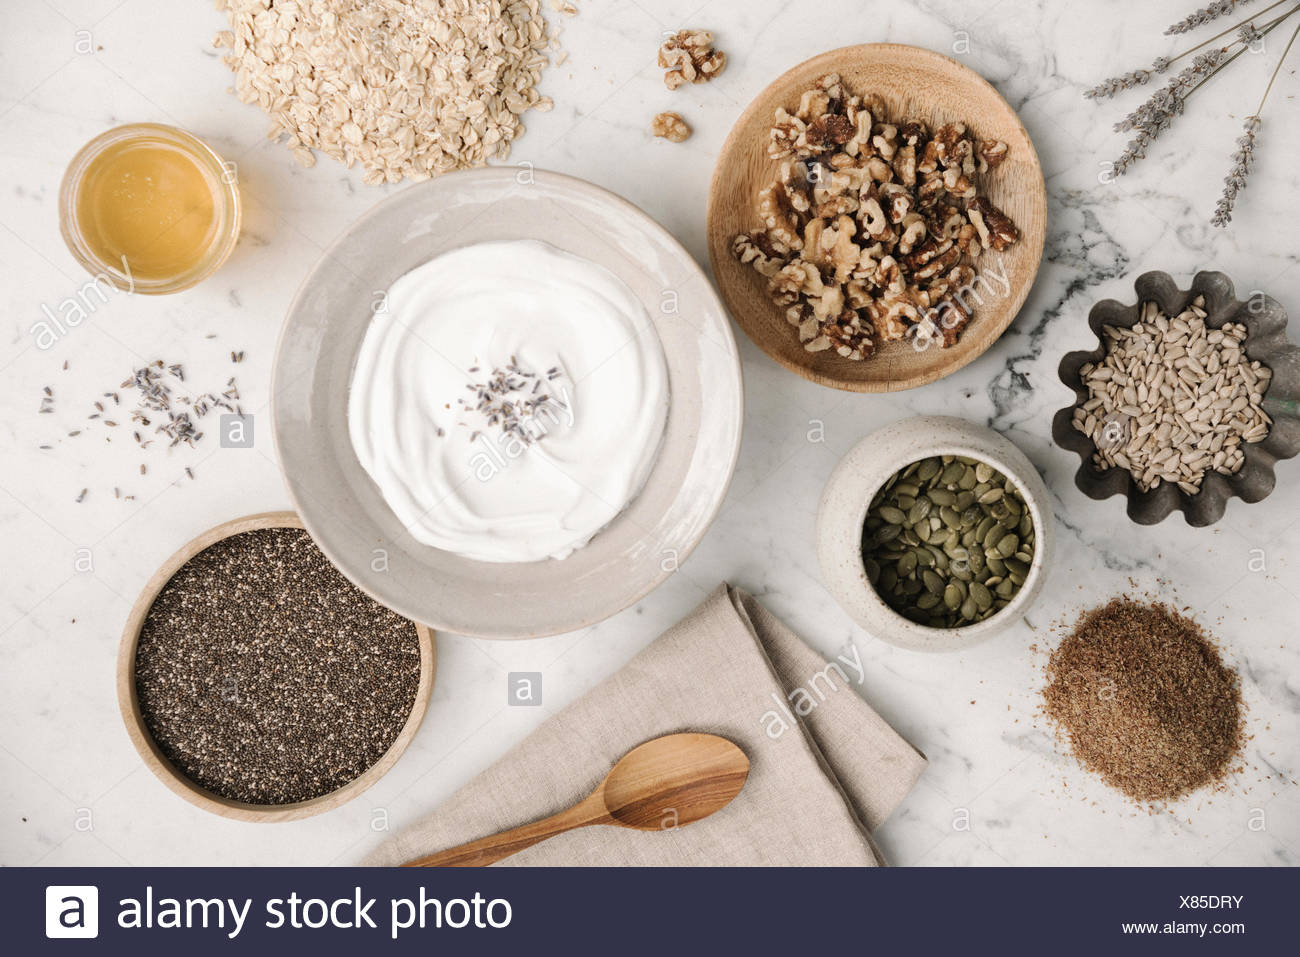 Overhead view of a table with food in dishes. - Stock Image